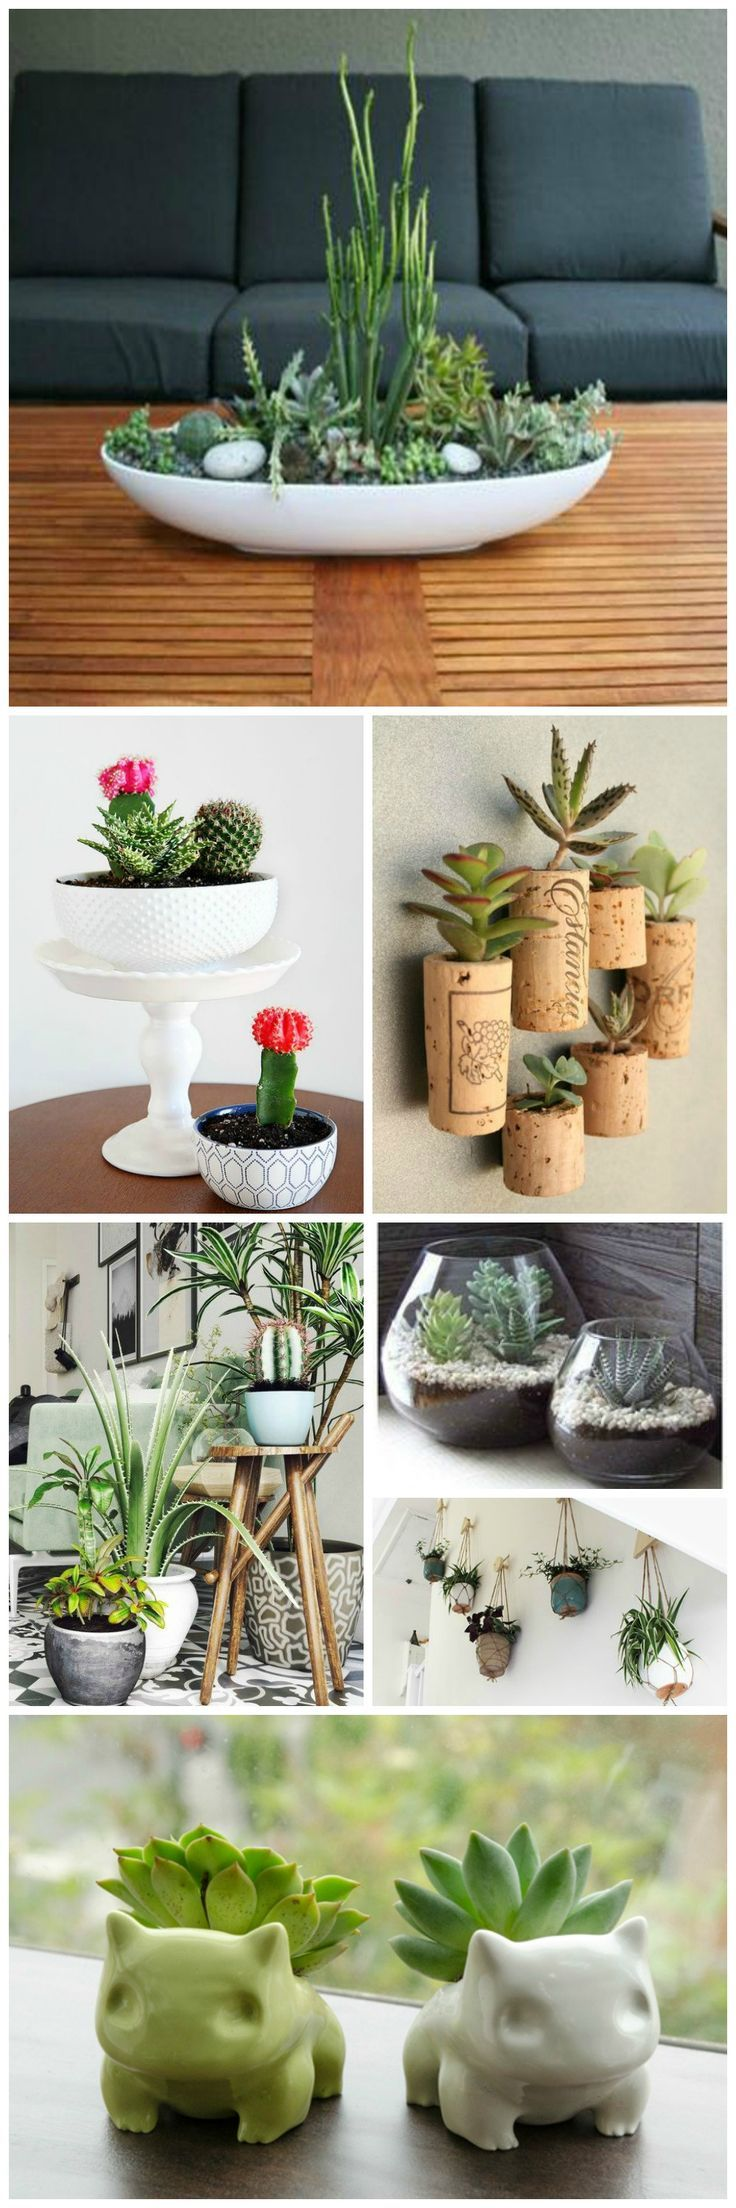 20 Cute Indoor Succulent Plant Decor Ideas To Beautify Your Home Kisses For Breakfast Succulents Decor Succulents Indoor Plant Decor